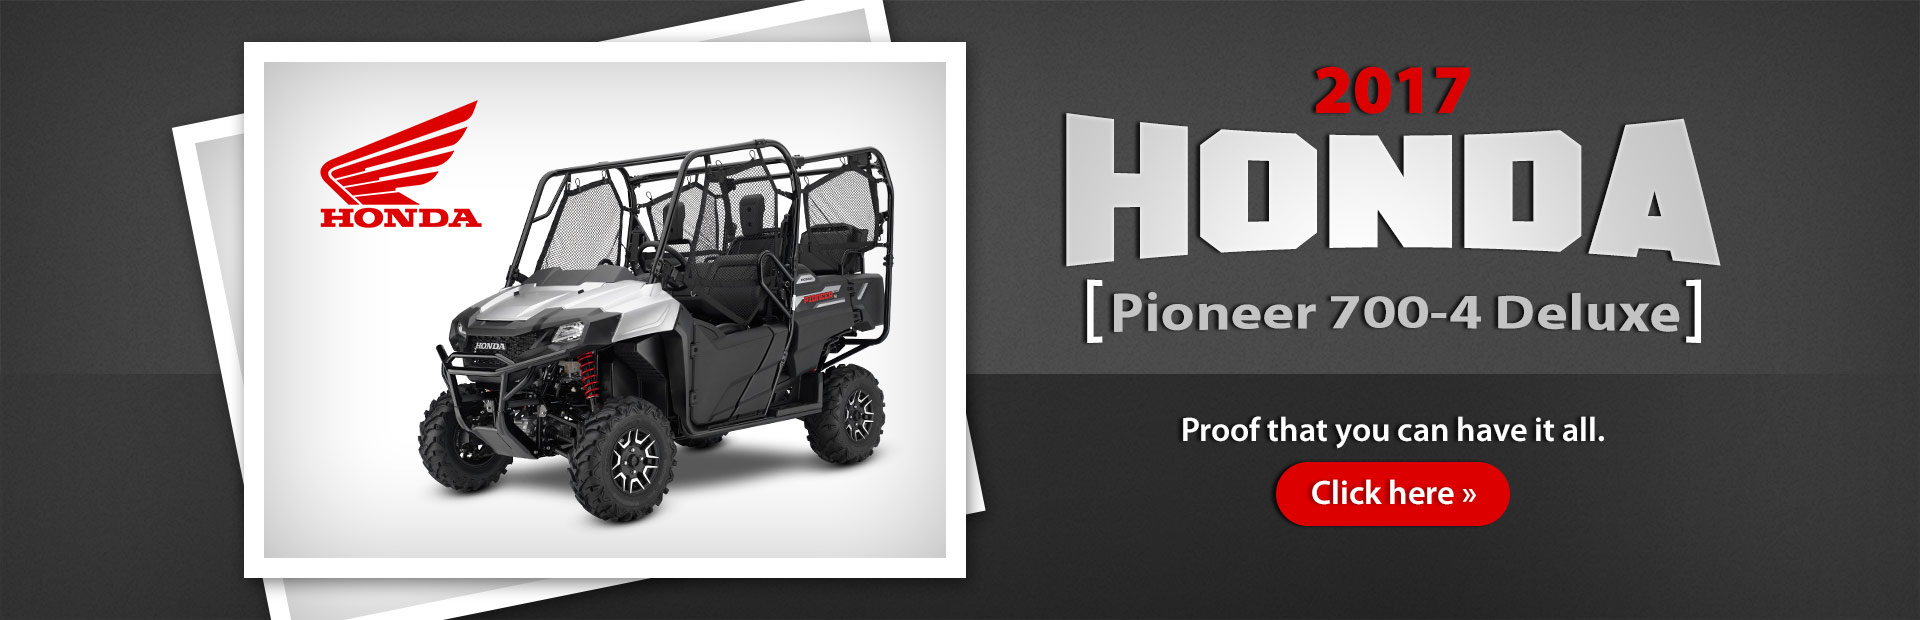 The 2017 Honda Pioneer 700 4 Deluxe: Click Here For Details.